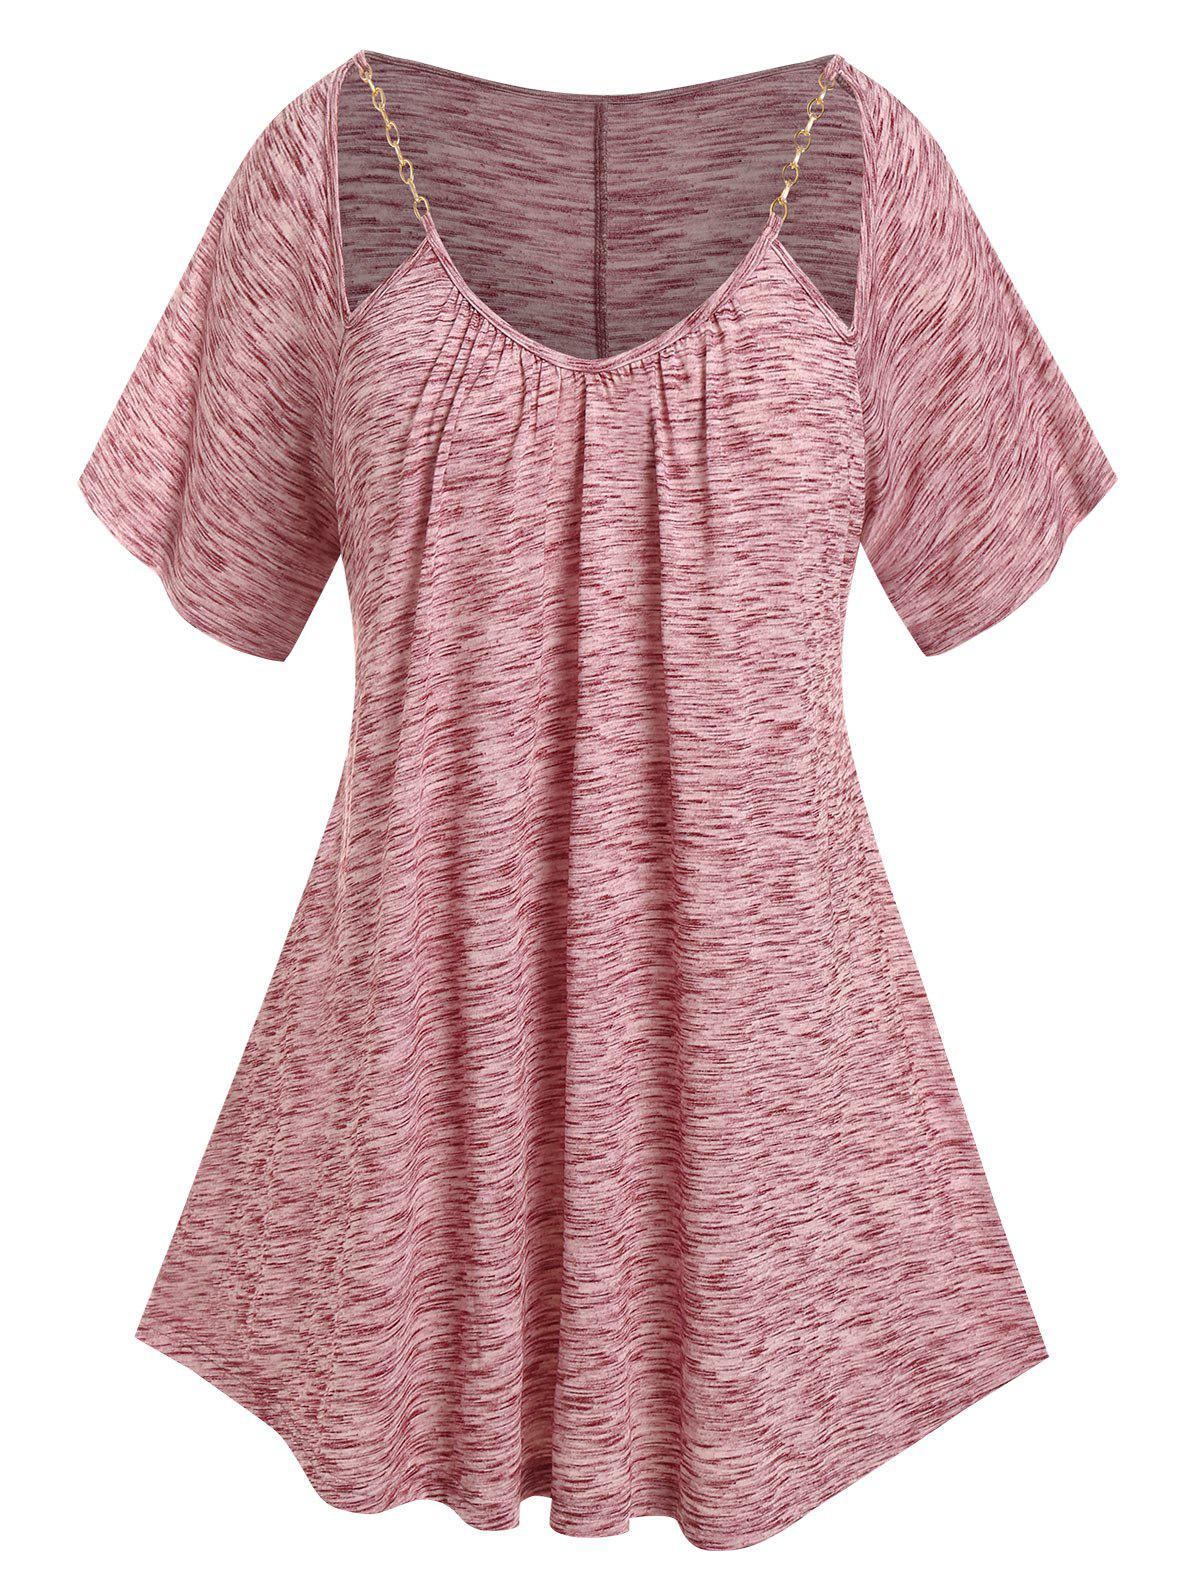 Plus Size Heathered Cut Out Chain T Shirt - DEEP RED 3X